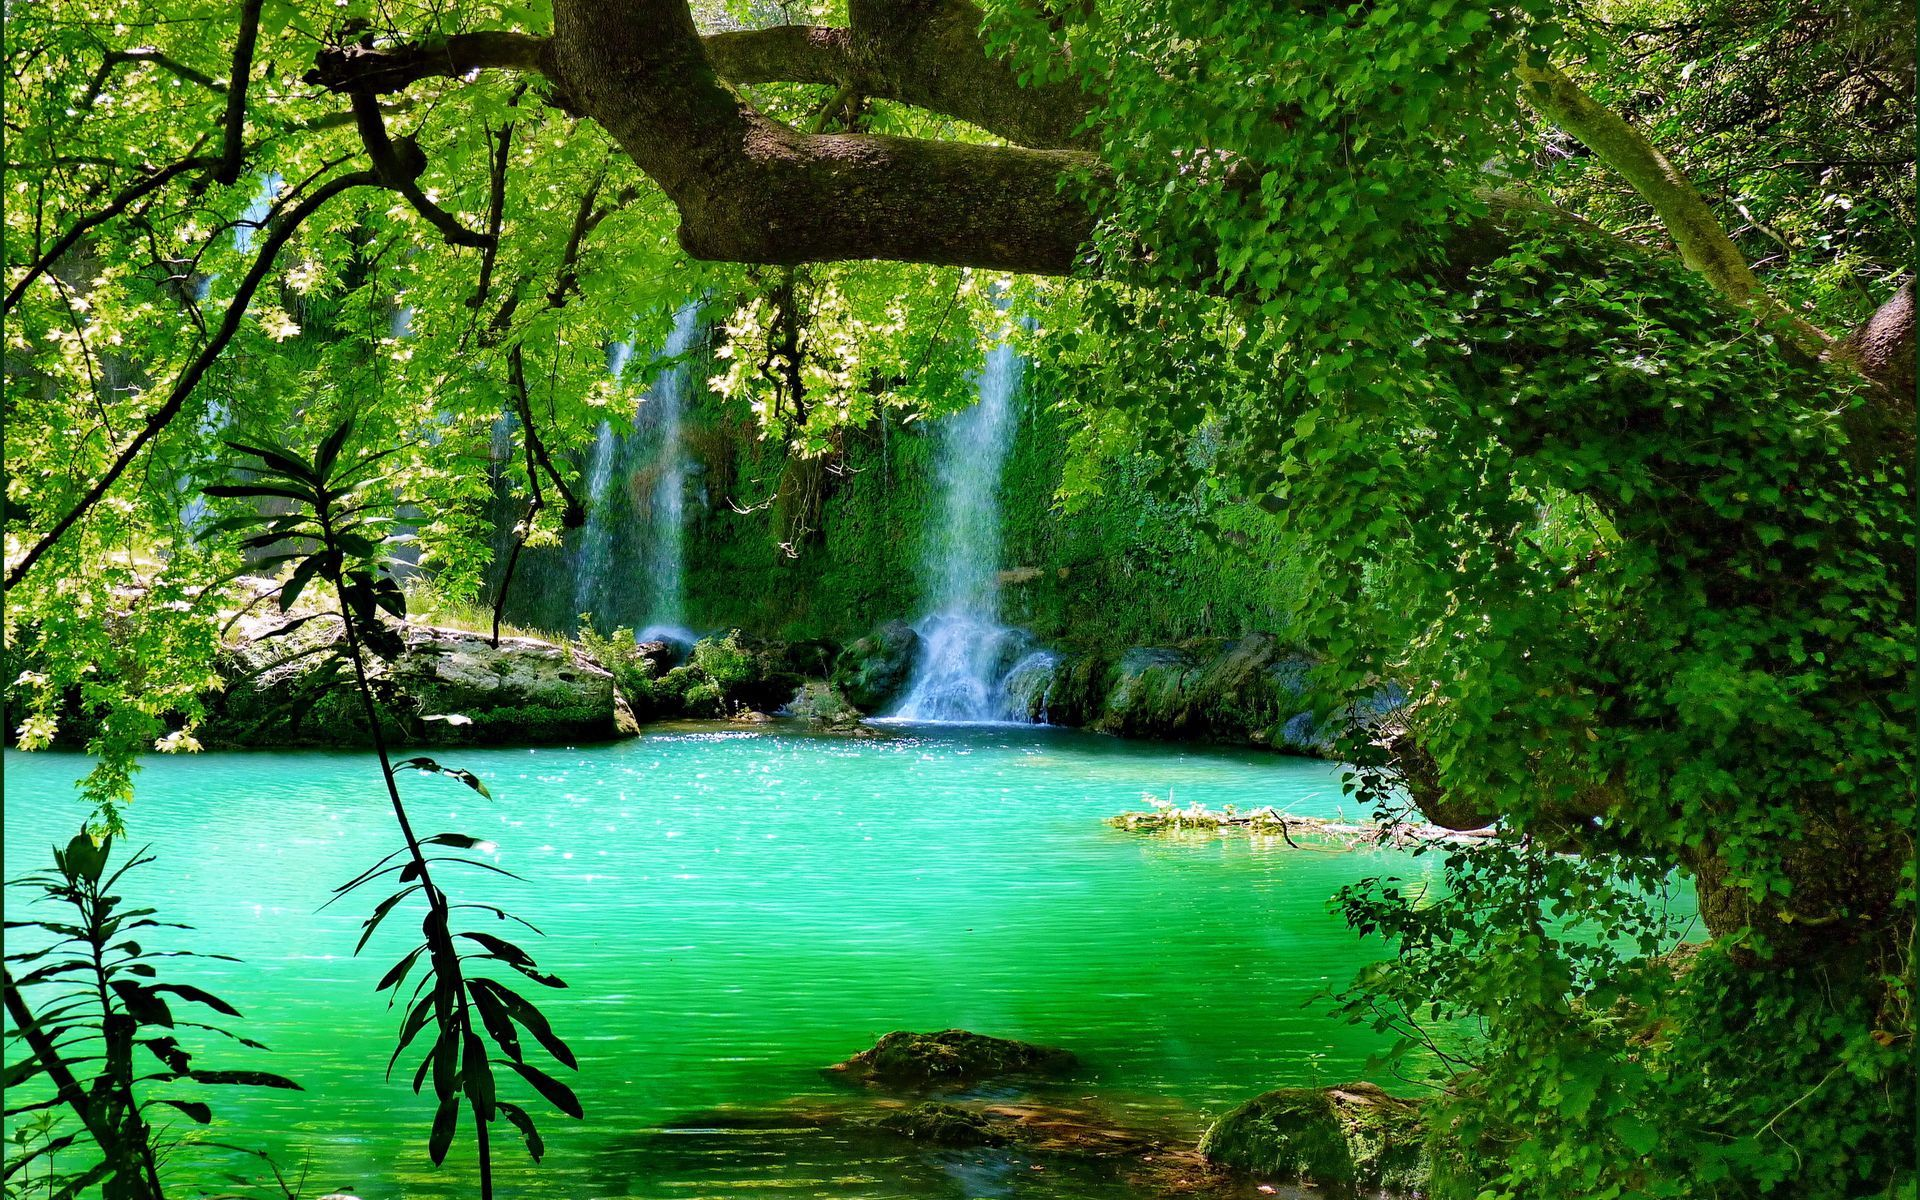 Forest Waterfall Background With Images Waterfall Forest